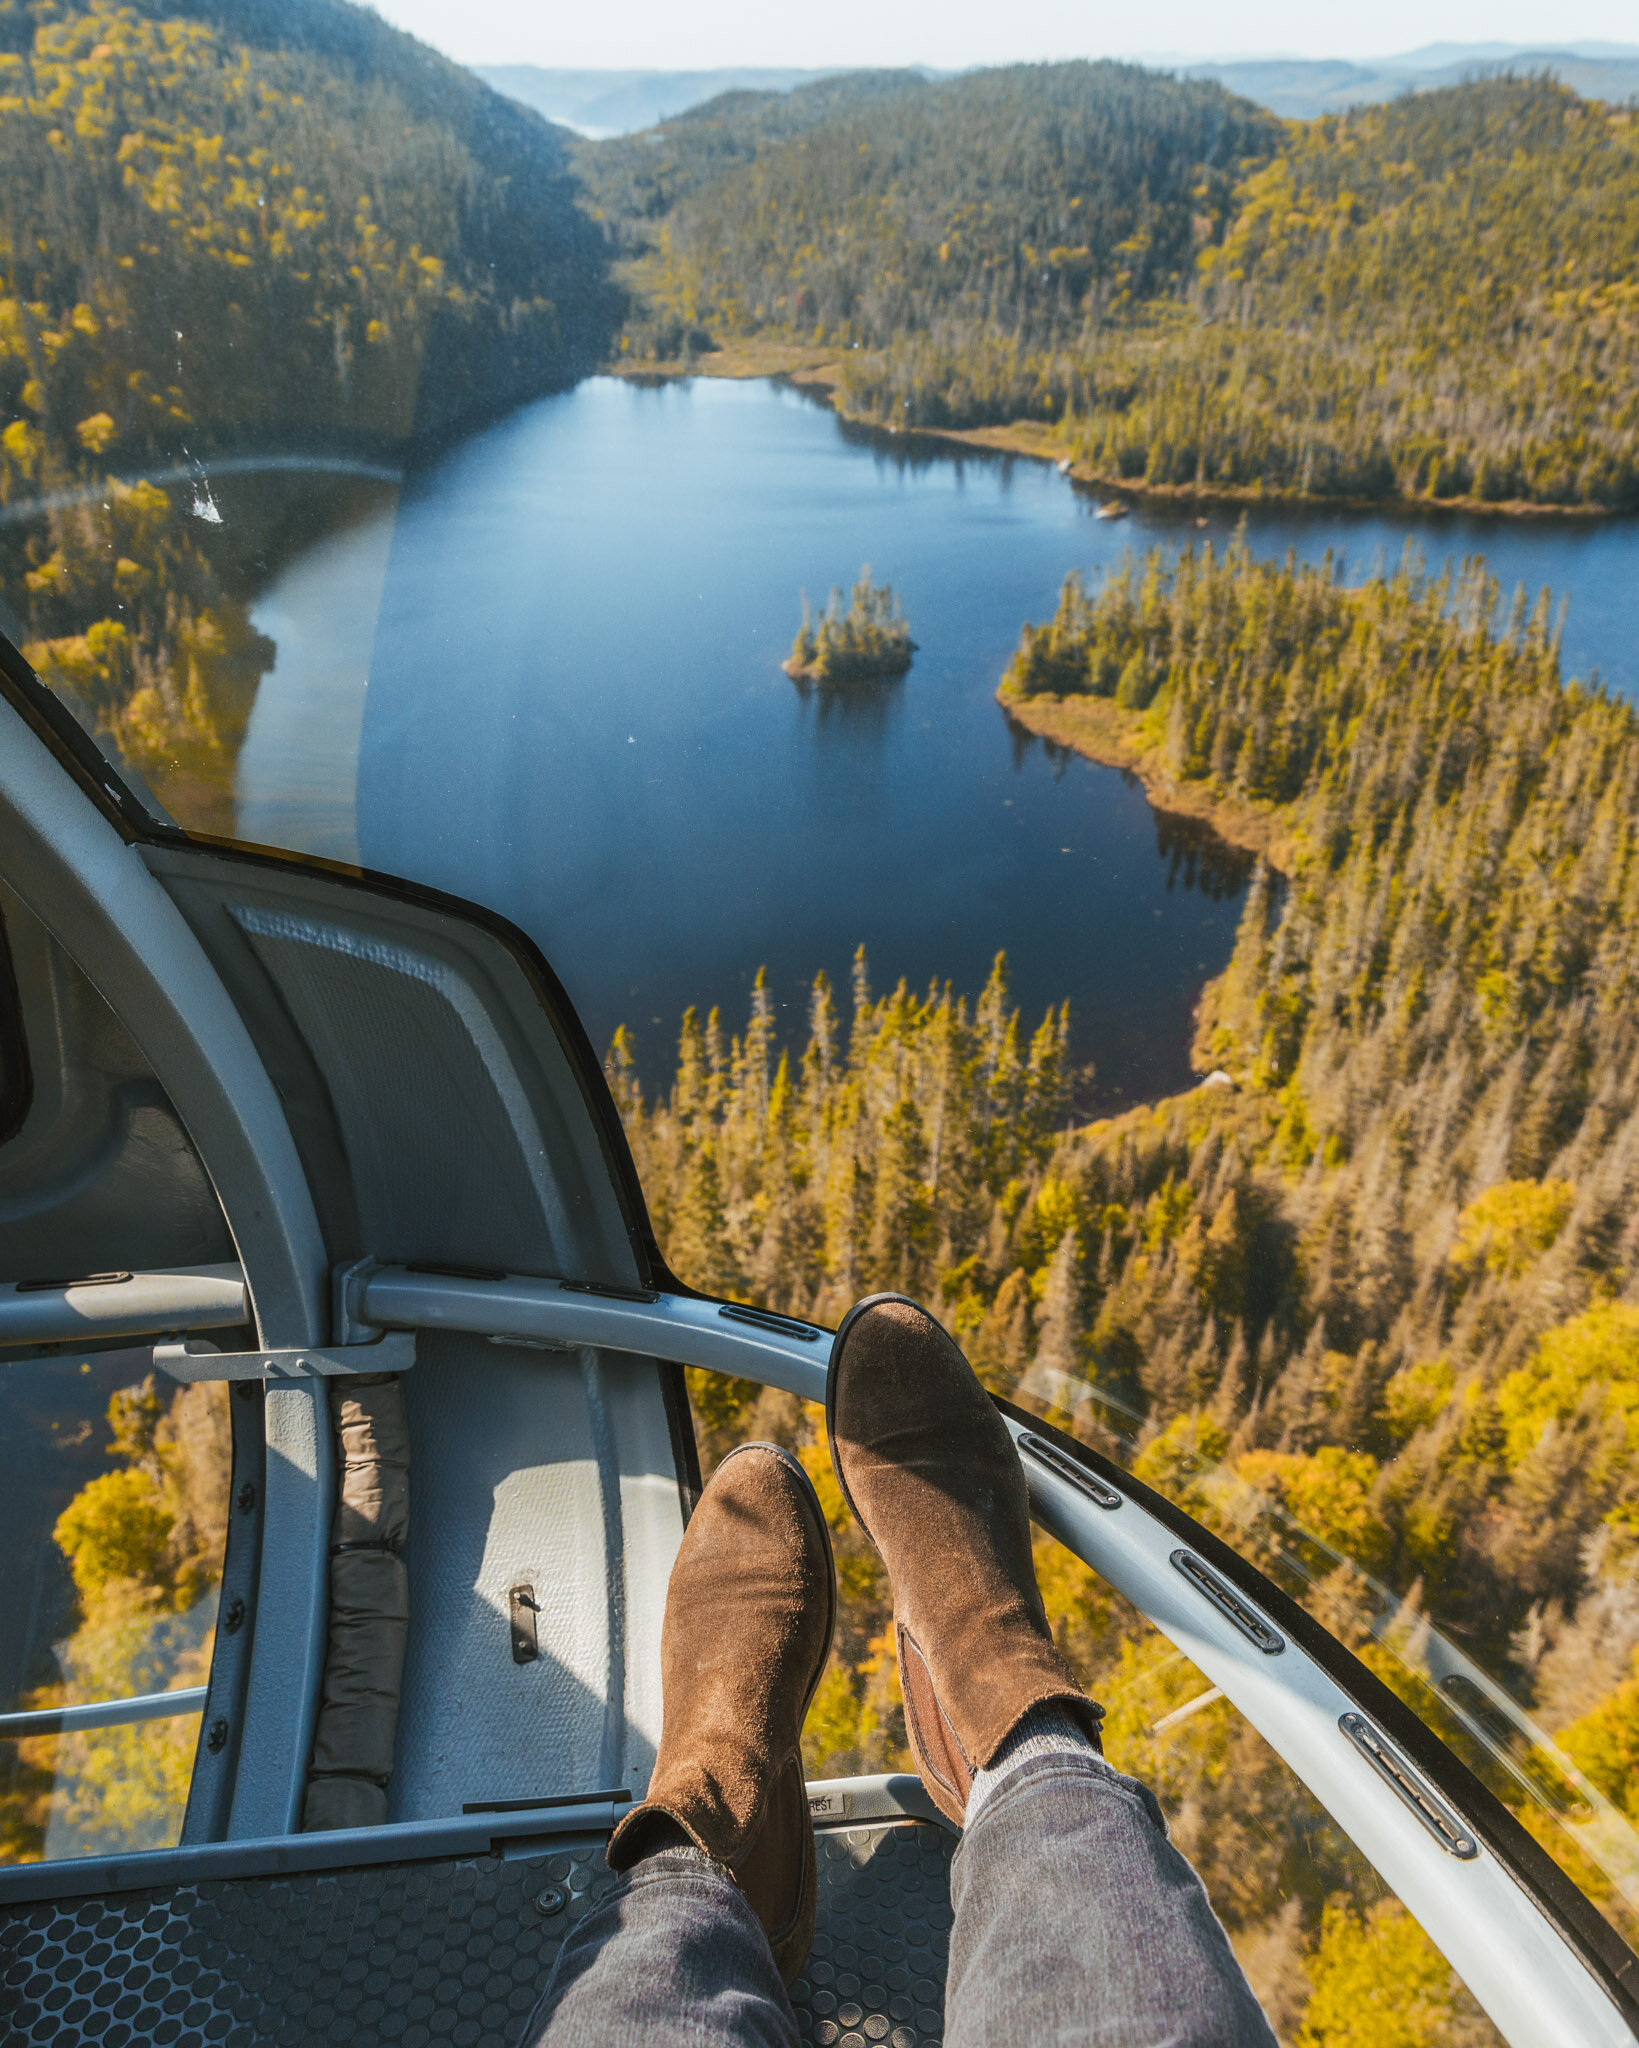 Saguenay Fjord helicopter tour // Cruise Review: 11-Day New England & Canada on the Seabourn Quest // #readysetjetset #cruise #luxury #travel #cruising #canada